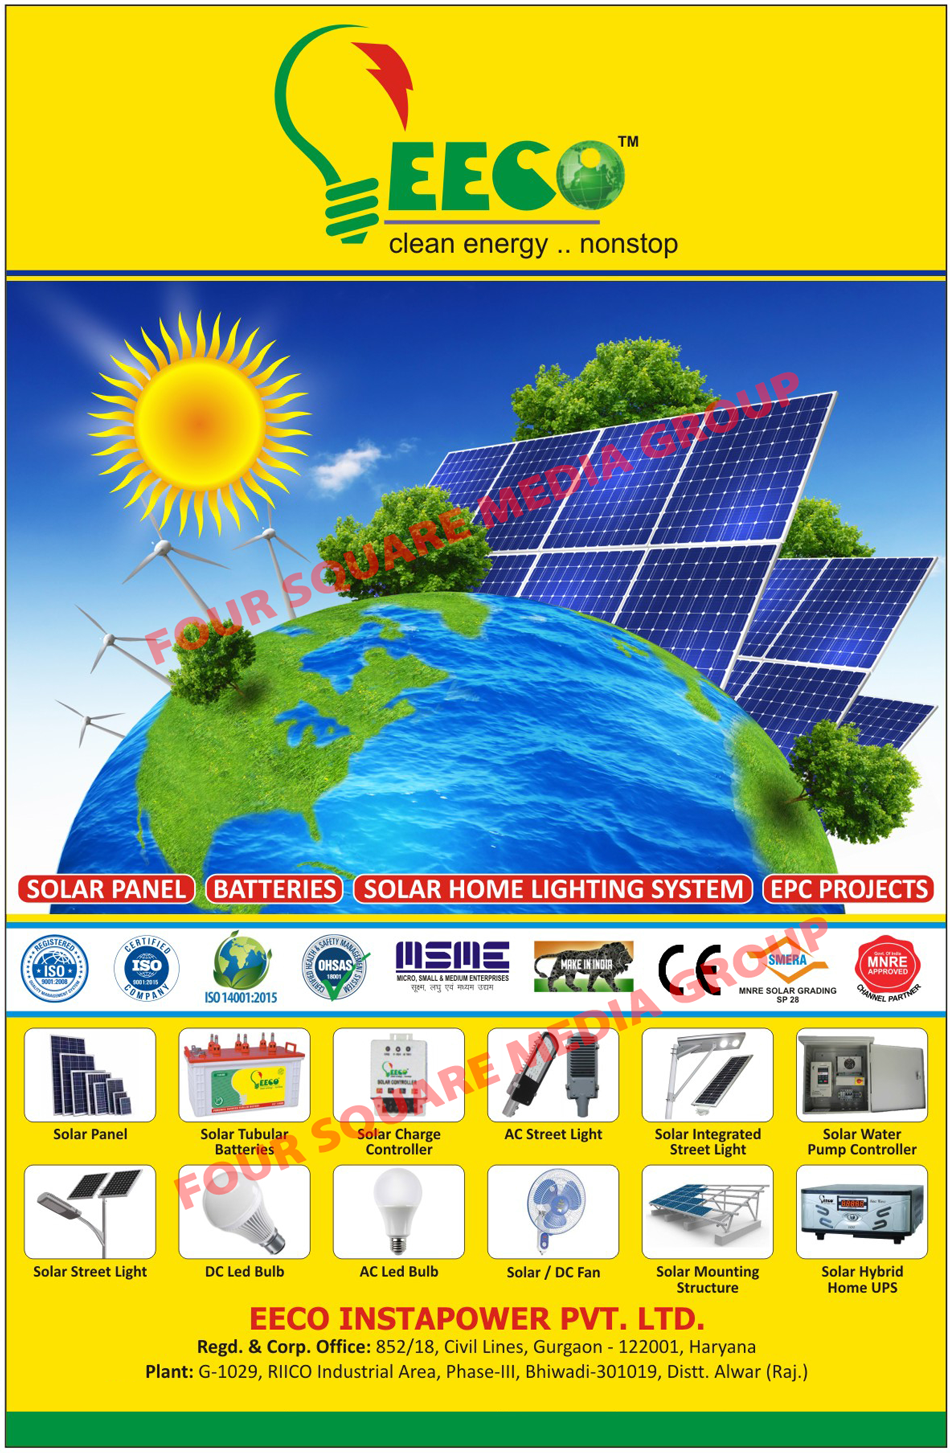 Solar Panels, Solar Tubular Batteries, Solar Charge Controllers, AC Street Lights, Solar Integrated Street Lights, Solar Water Pump Controllers, Solar Street Lights, DC Led Bulbs, AC Led Bulbs, Solar Fans, DC Fans, Solar Mounting Structures, Solar Hybrid Home UPS, Solar Home Lighting Systems